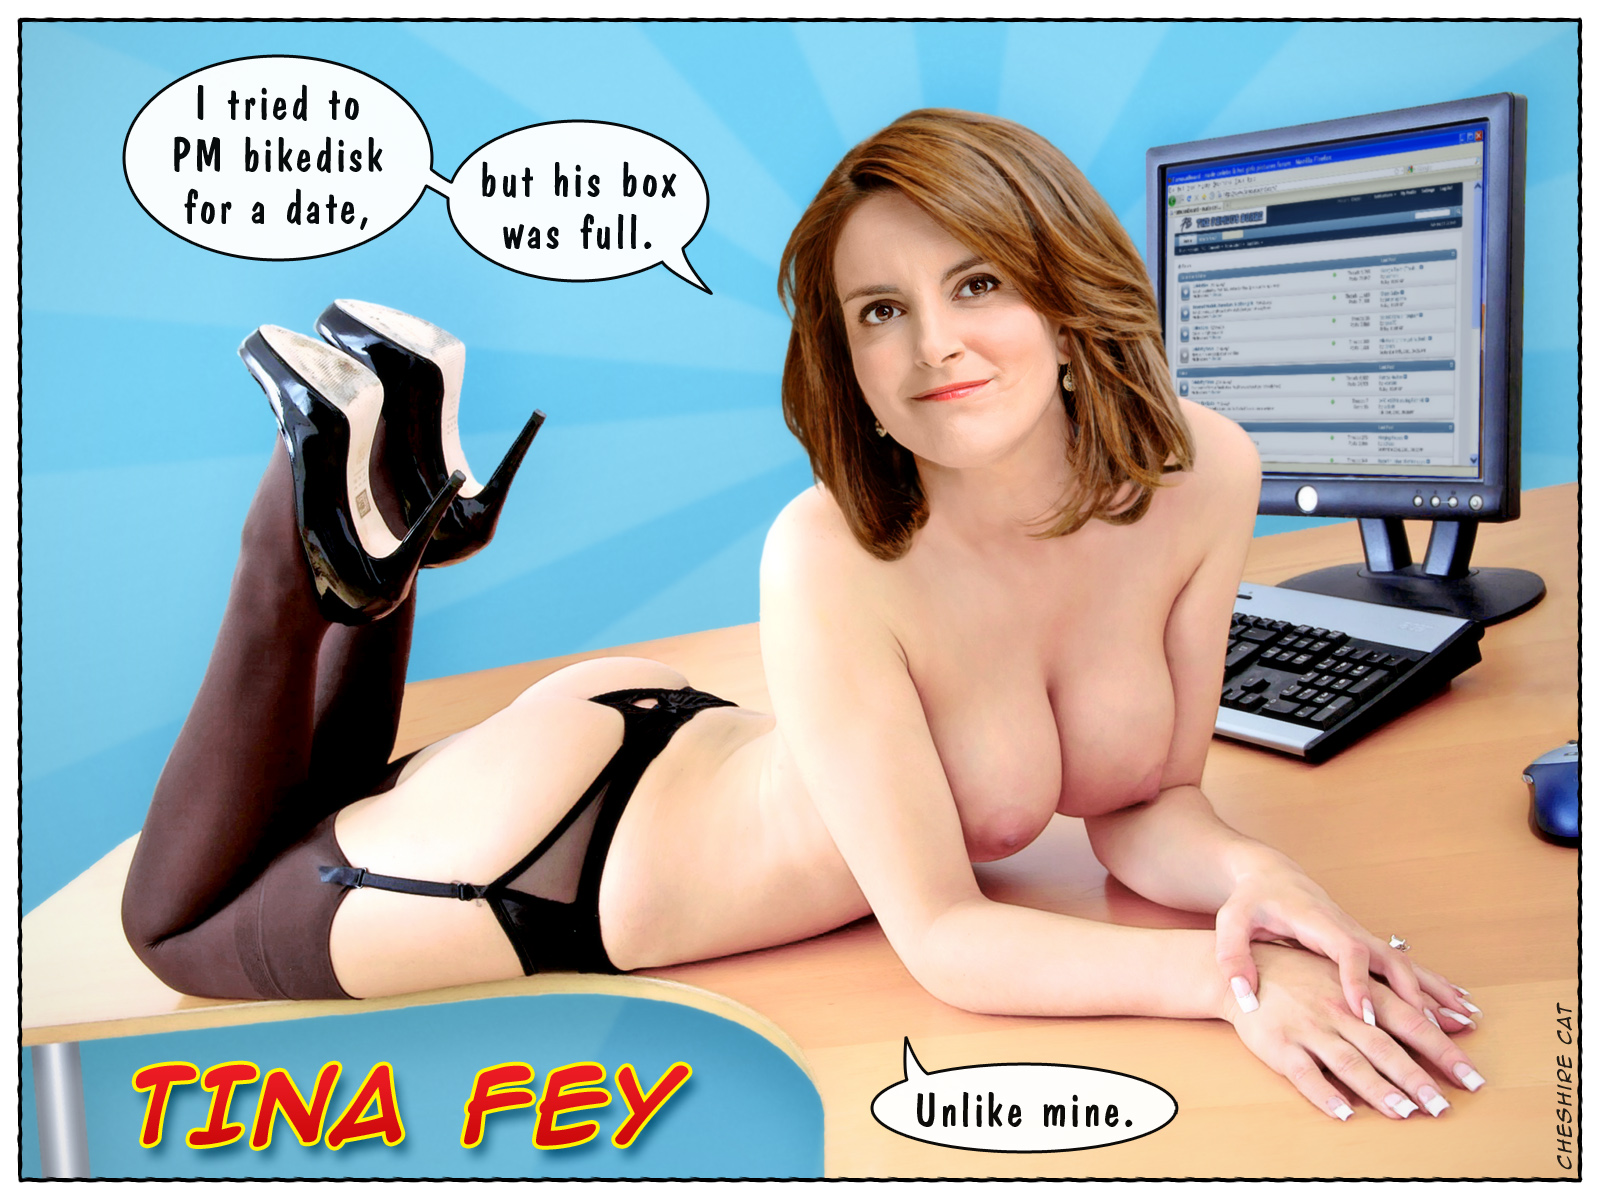 tina fey fake naked